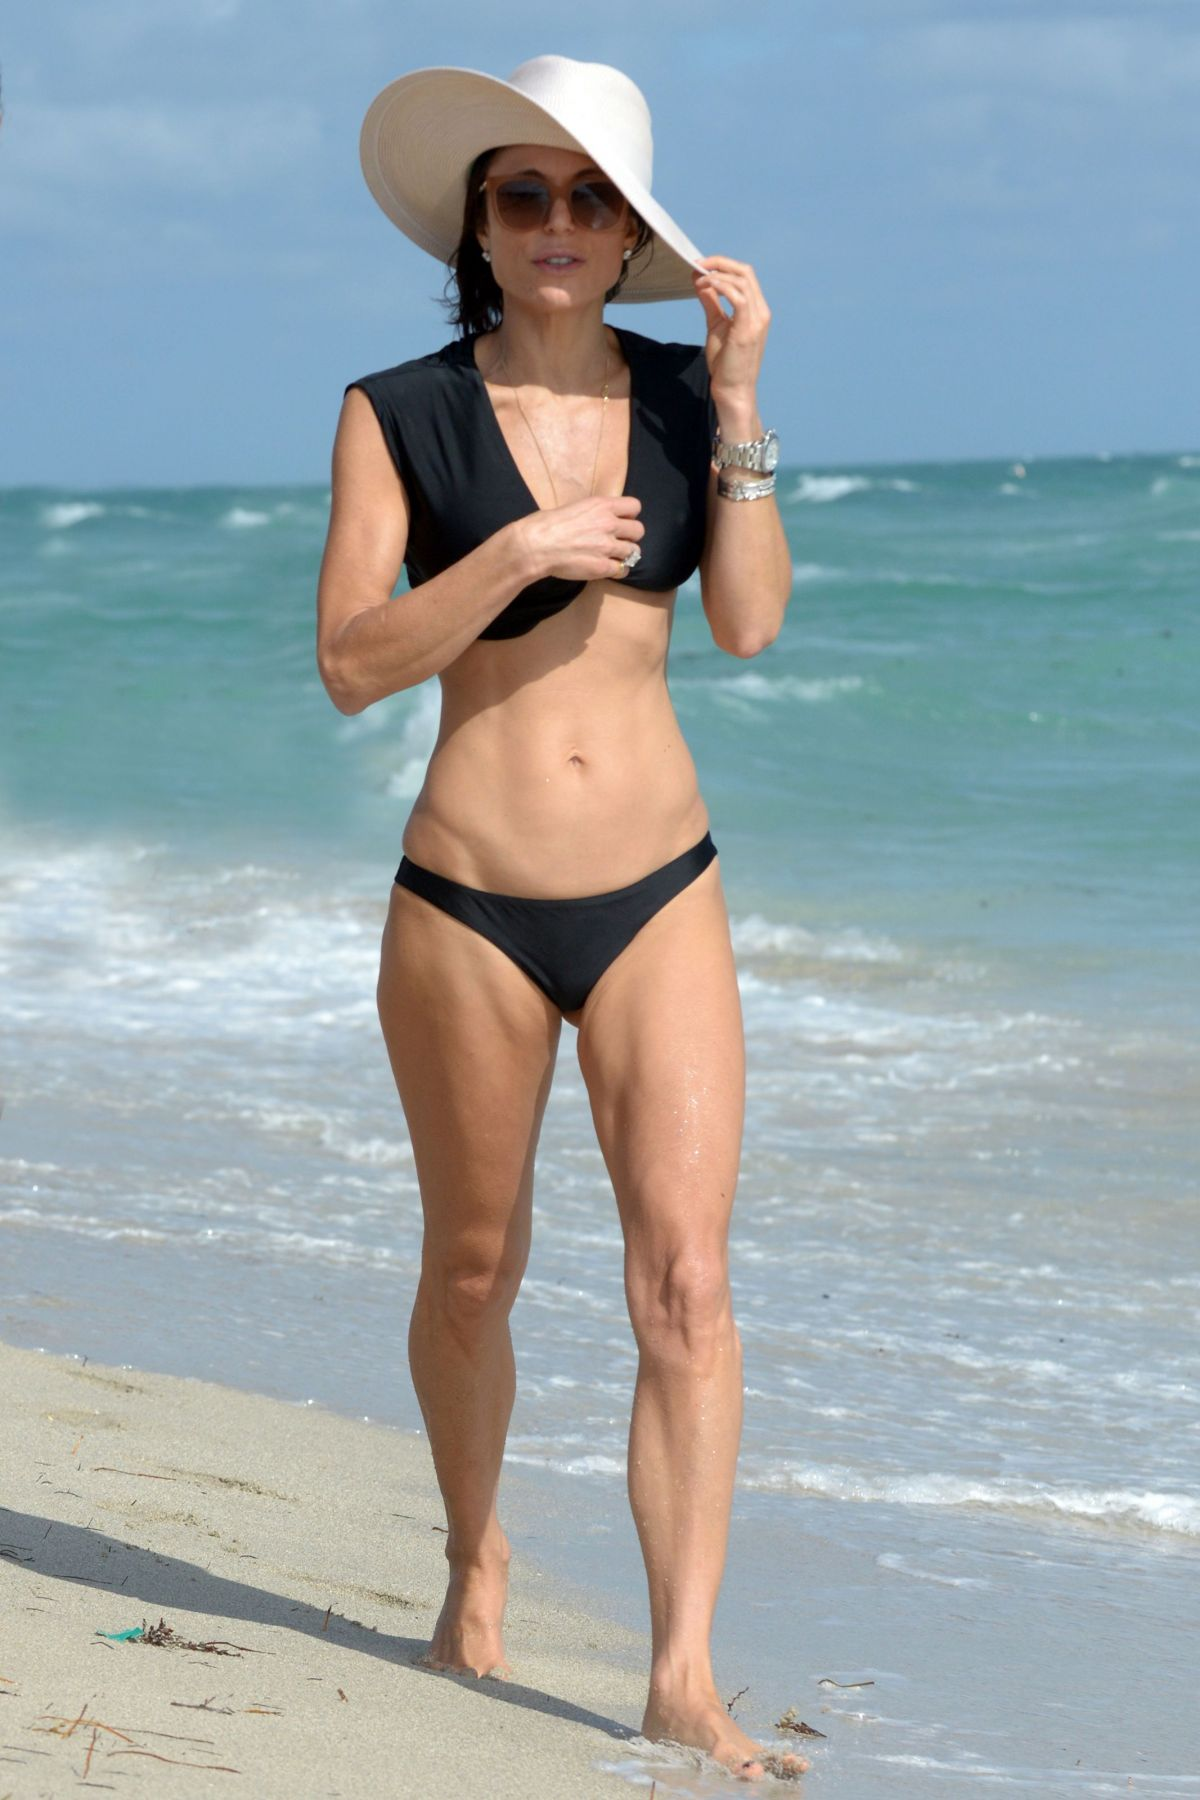 BETHENNY FRANKEL in Bikini on the Beach in Miami 12/05/2016   bethenny-frankel-in-bikini-on-the-beach-in-miami-12-05-2016_25